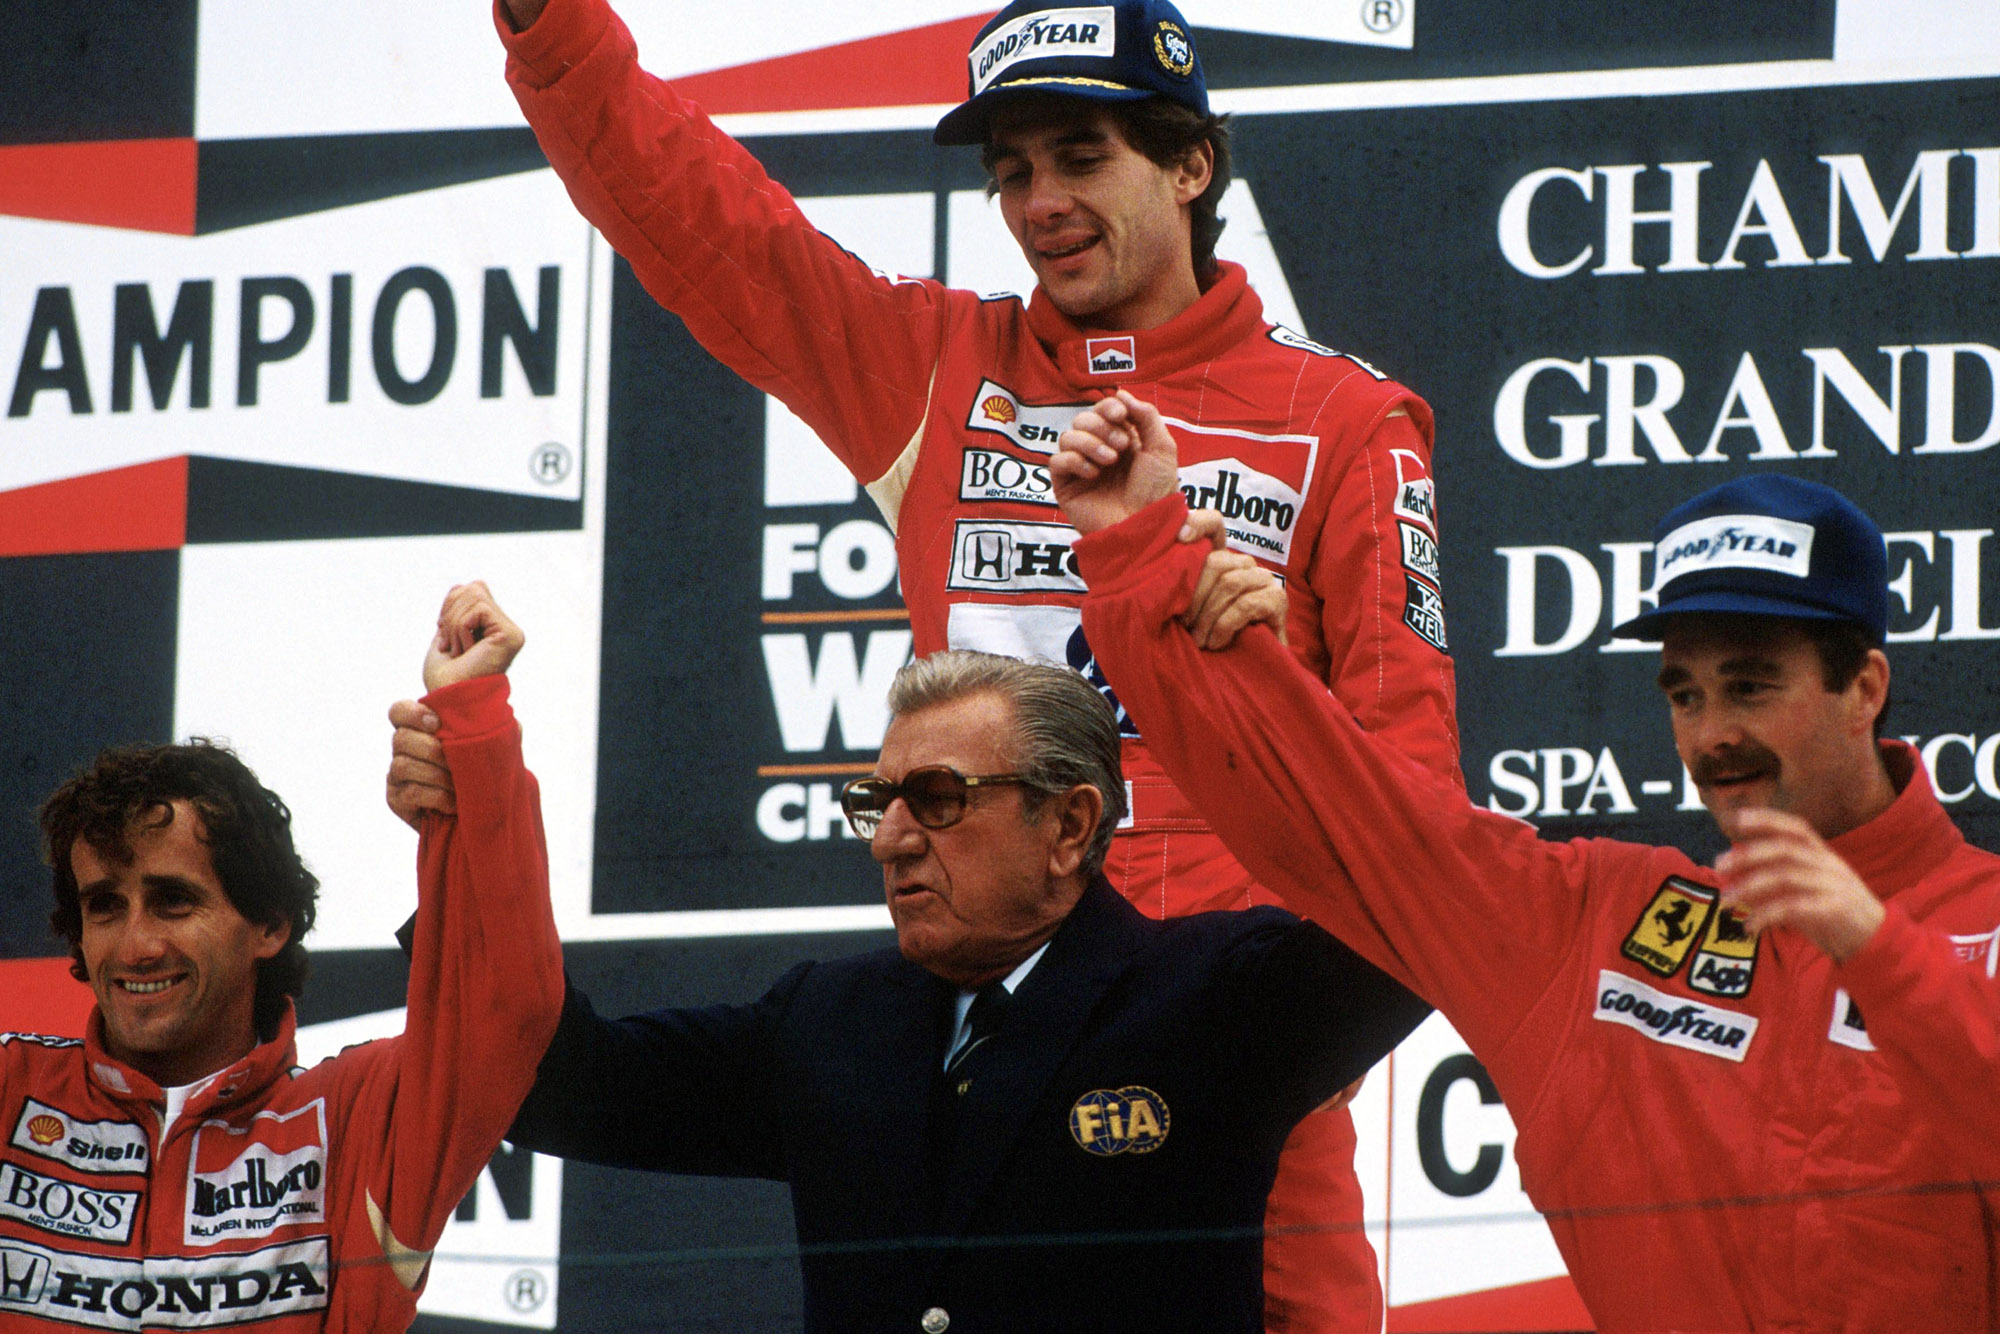 Jean Marie Balestre raises the arms of Nigel Mansell and Alain Prost in front of race winner Ayrton Senna at the 1989 Belgian Grand Prix